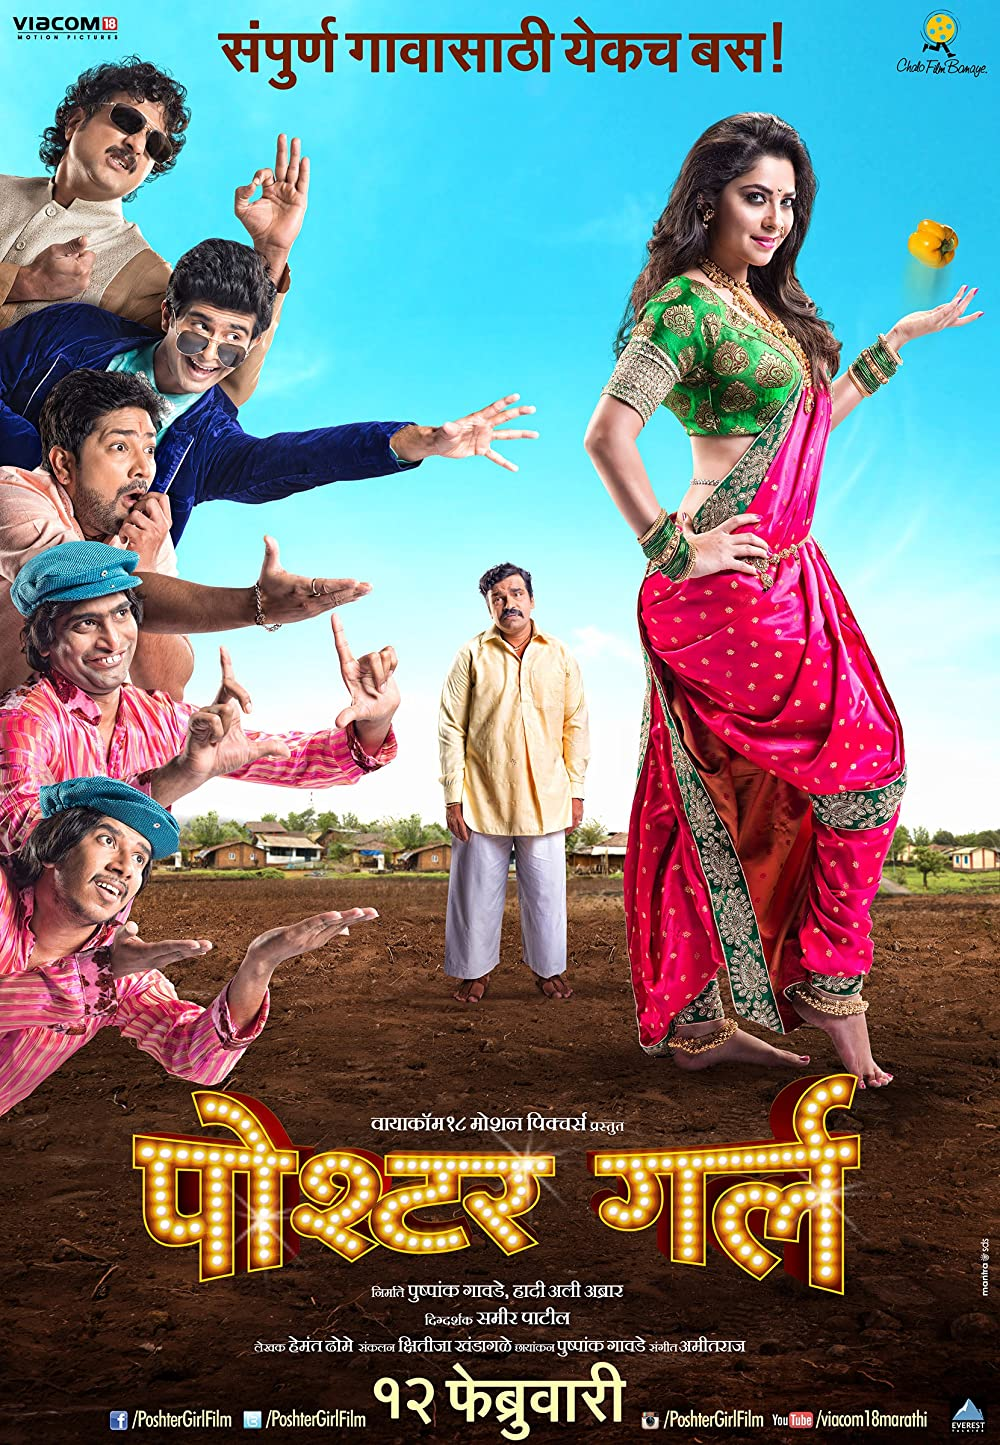 Poshter Girl 2016 Marathi Full Movie 440MB HDRip ESub Download